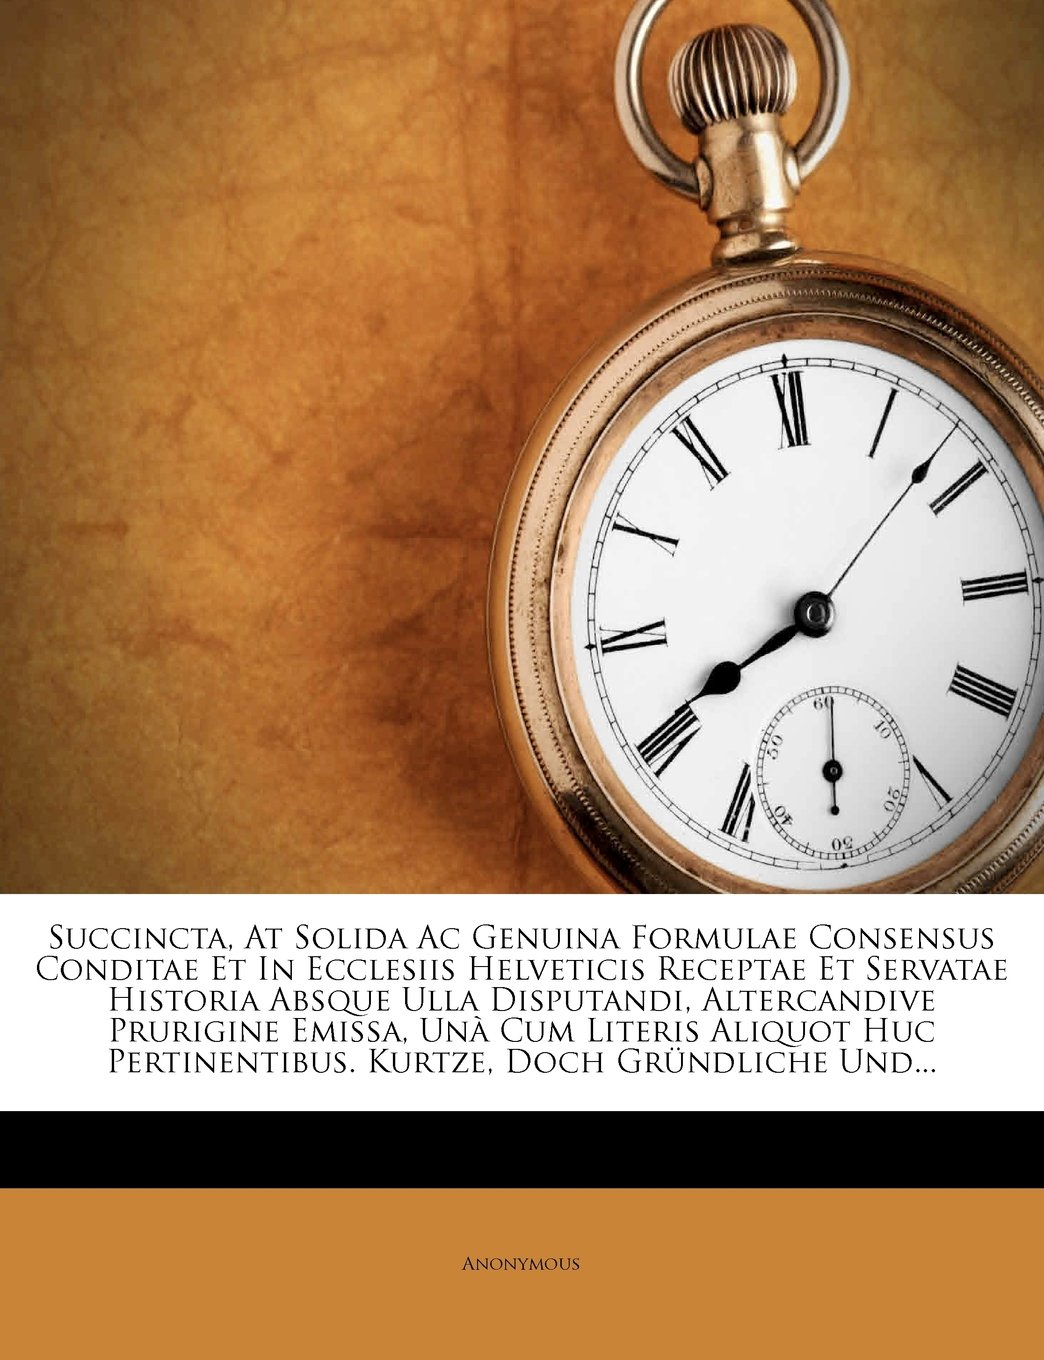 Download Succincta, At Solida Ac Genuina Formulae Consensus Conditae Et In Ecclesiis Helveticis Receptae Et Servatae Historia Absque Ulla Disputandi, ... Doch Gründliche Und... (Latin Edition) PDF